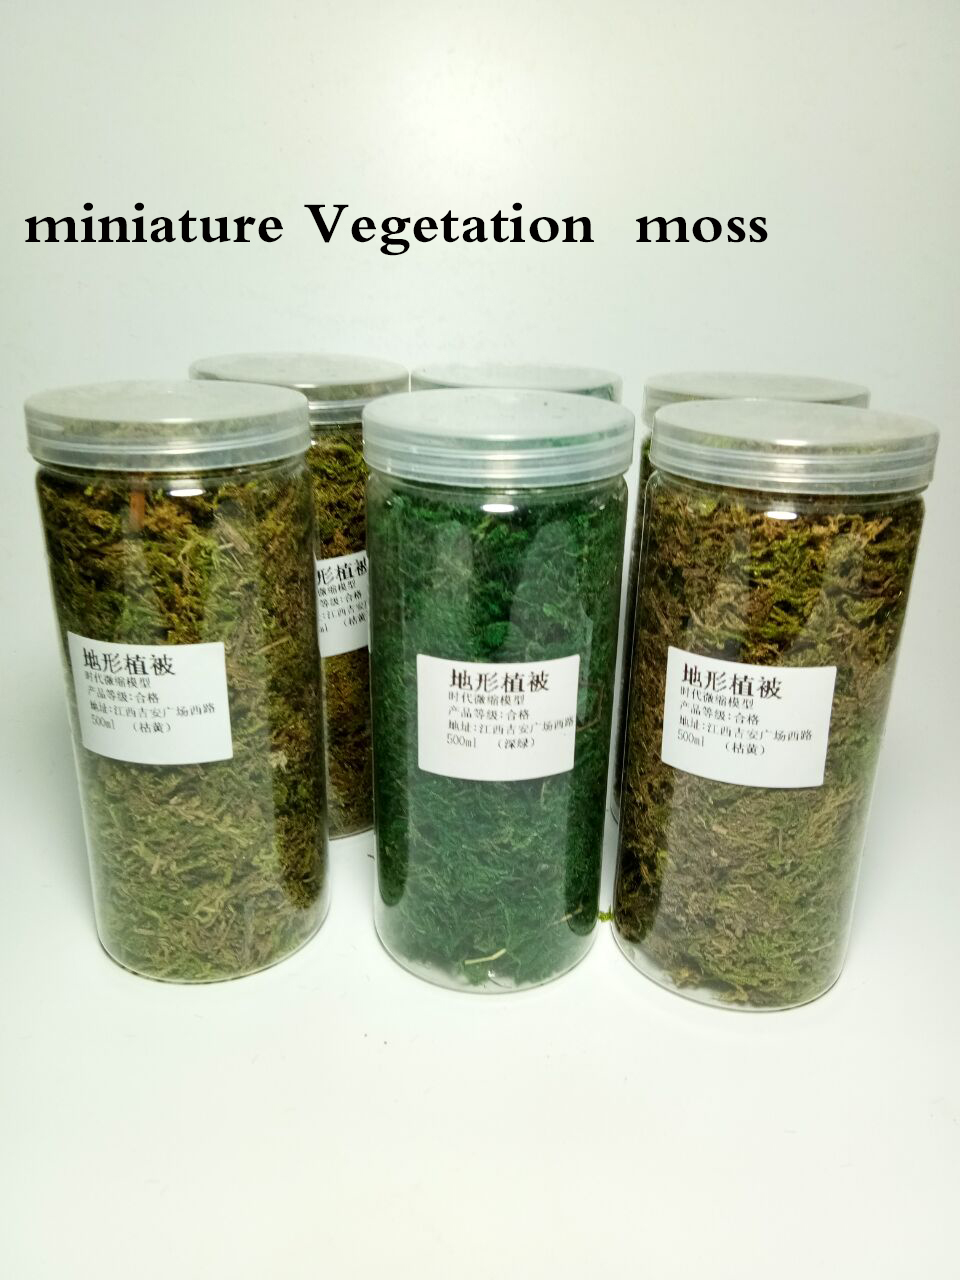 Miniature Vegetation Moss Vegetation Simulation Grass Powder Scenario Building DIY Garden Materials 400ML